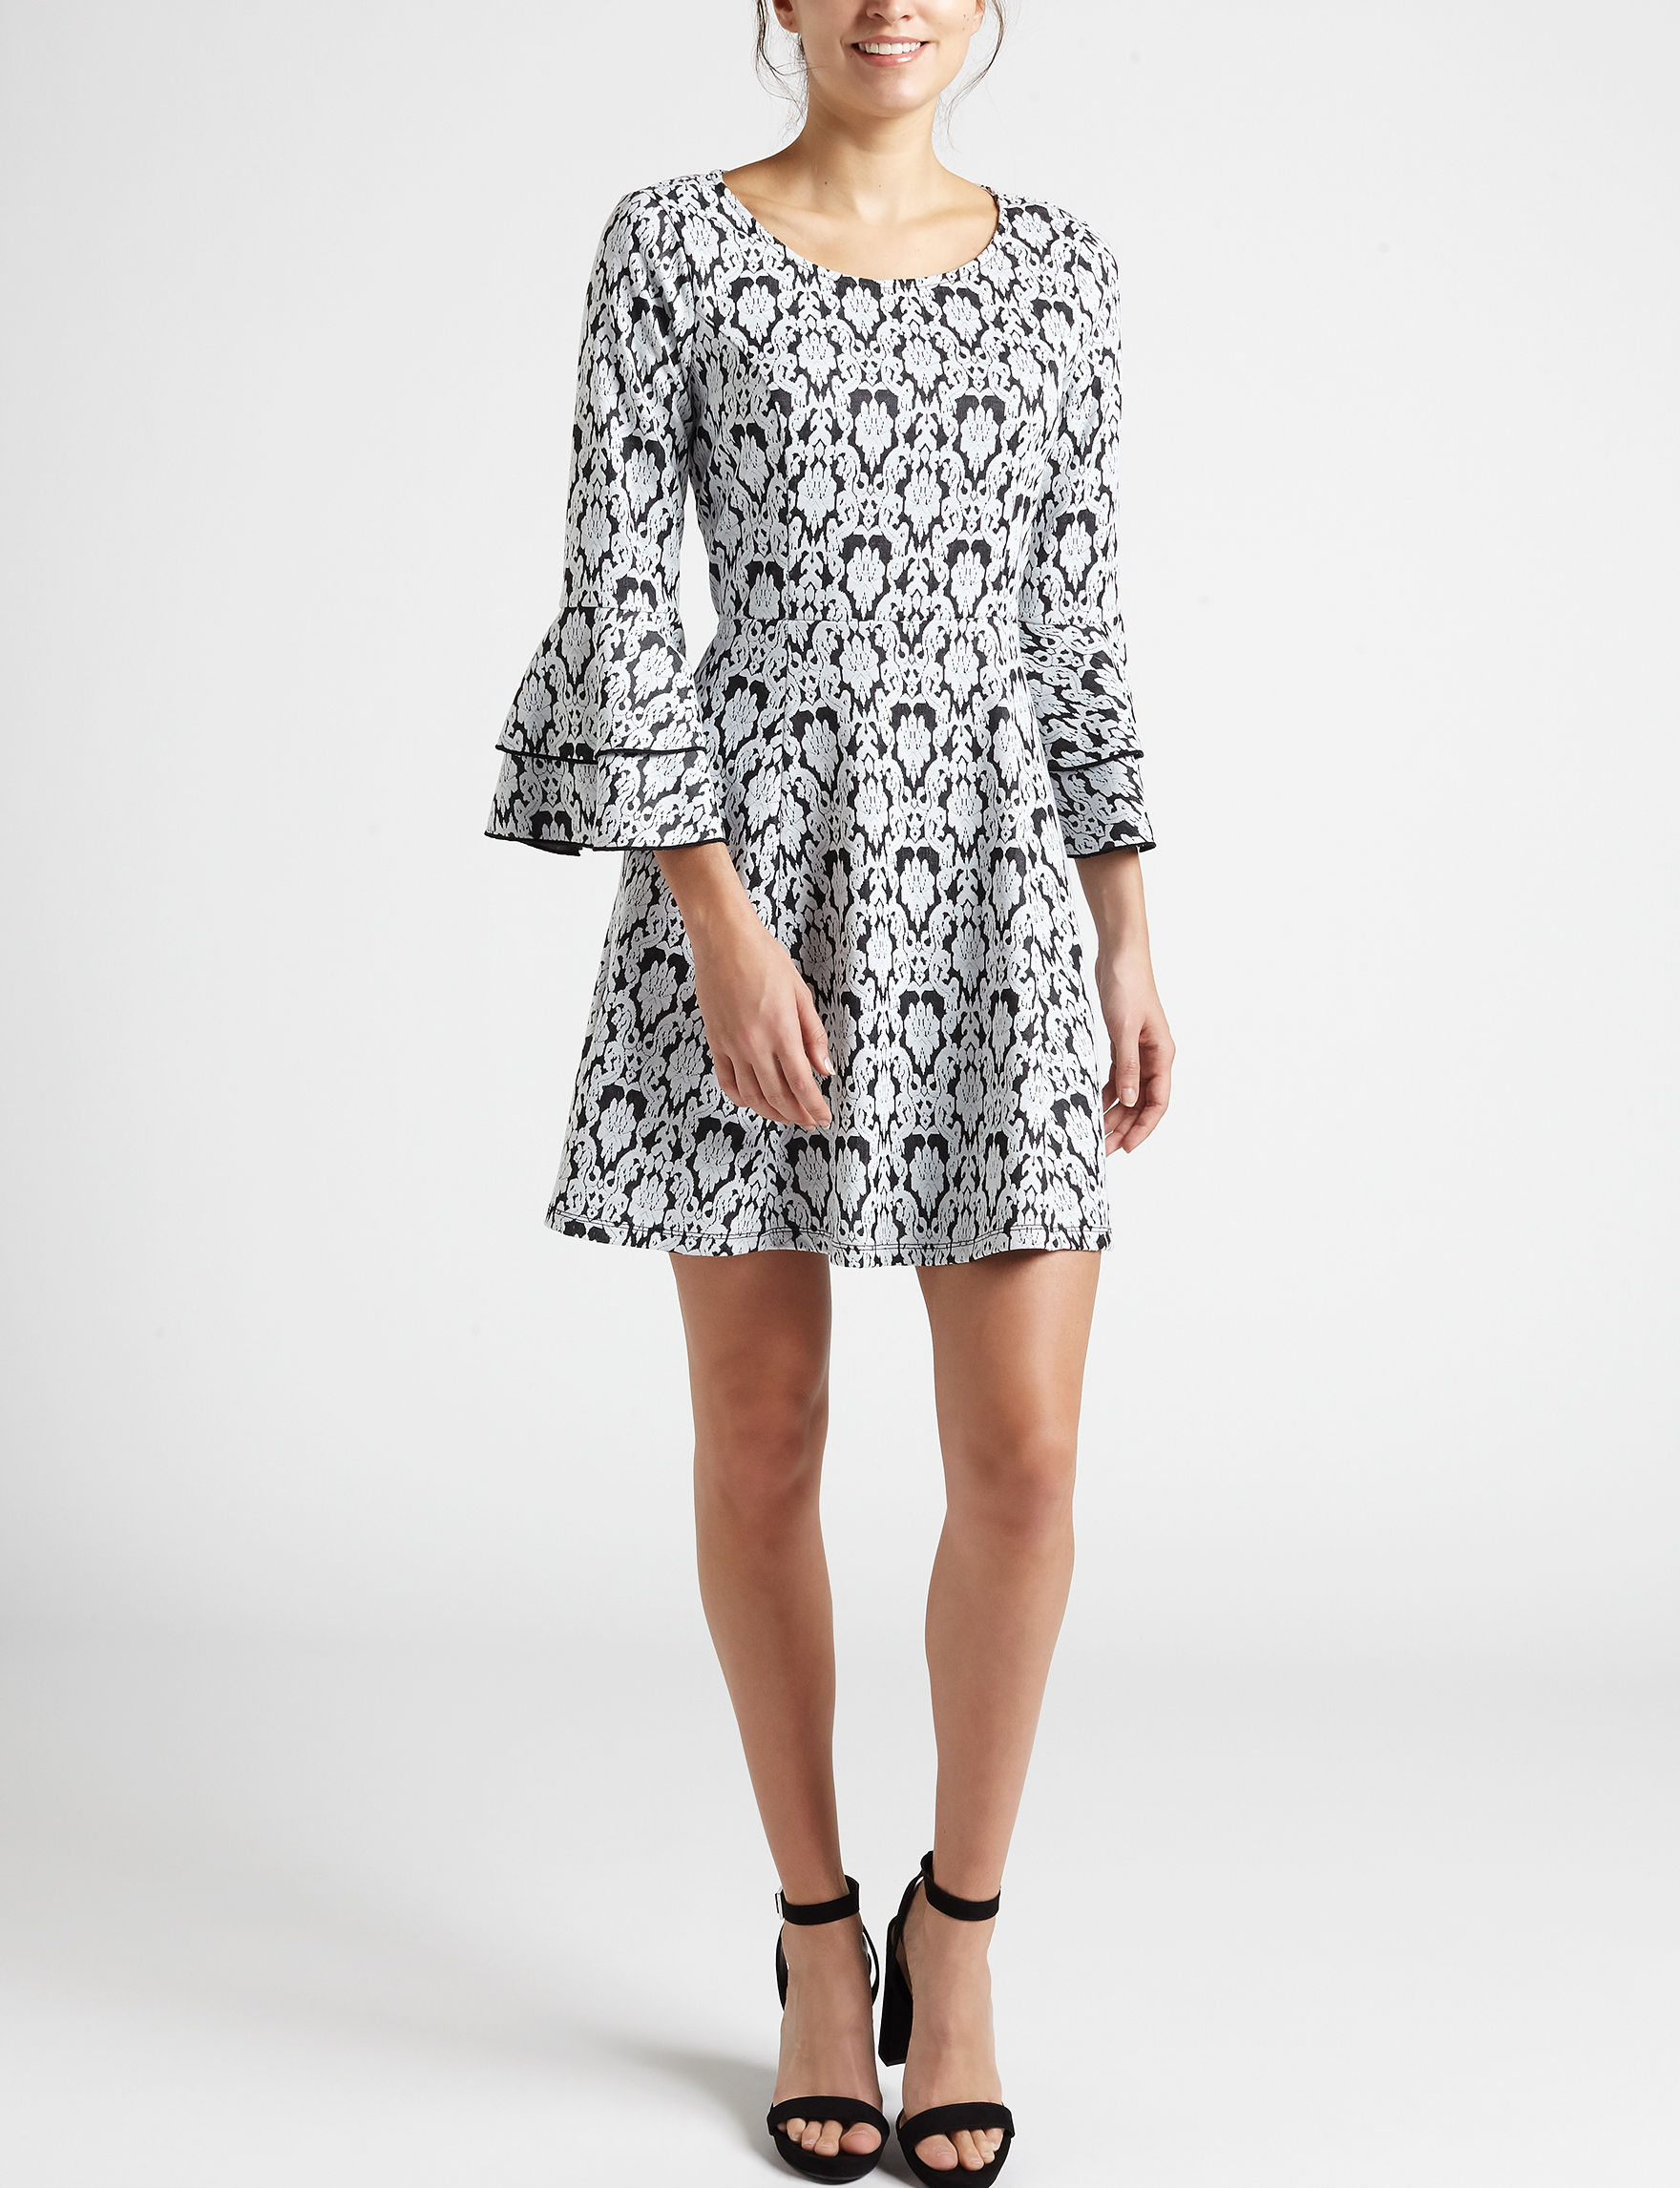 Sequin Hearts White / Black Everyday & Casual Fit & Flare Dresses